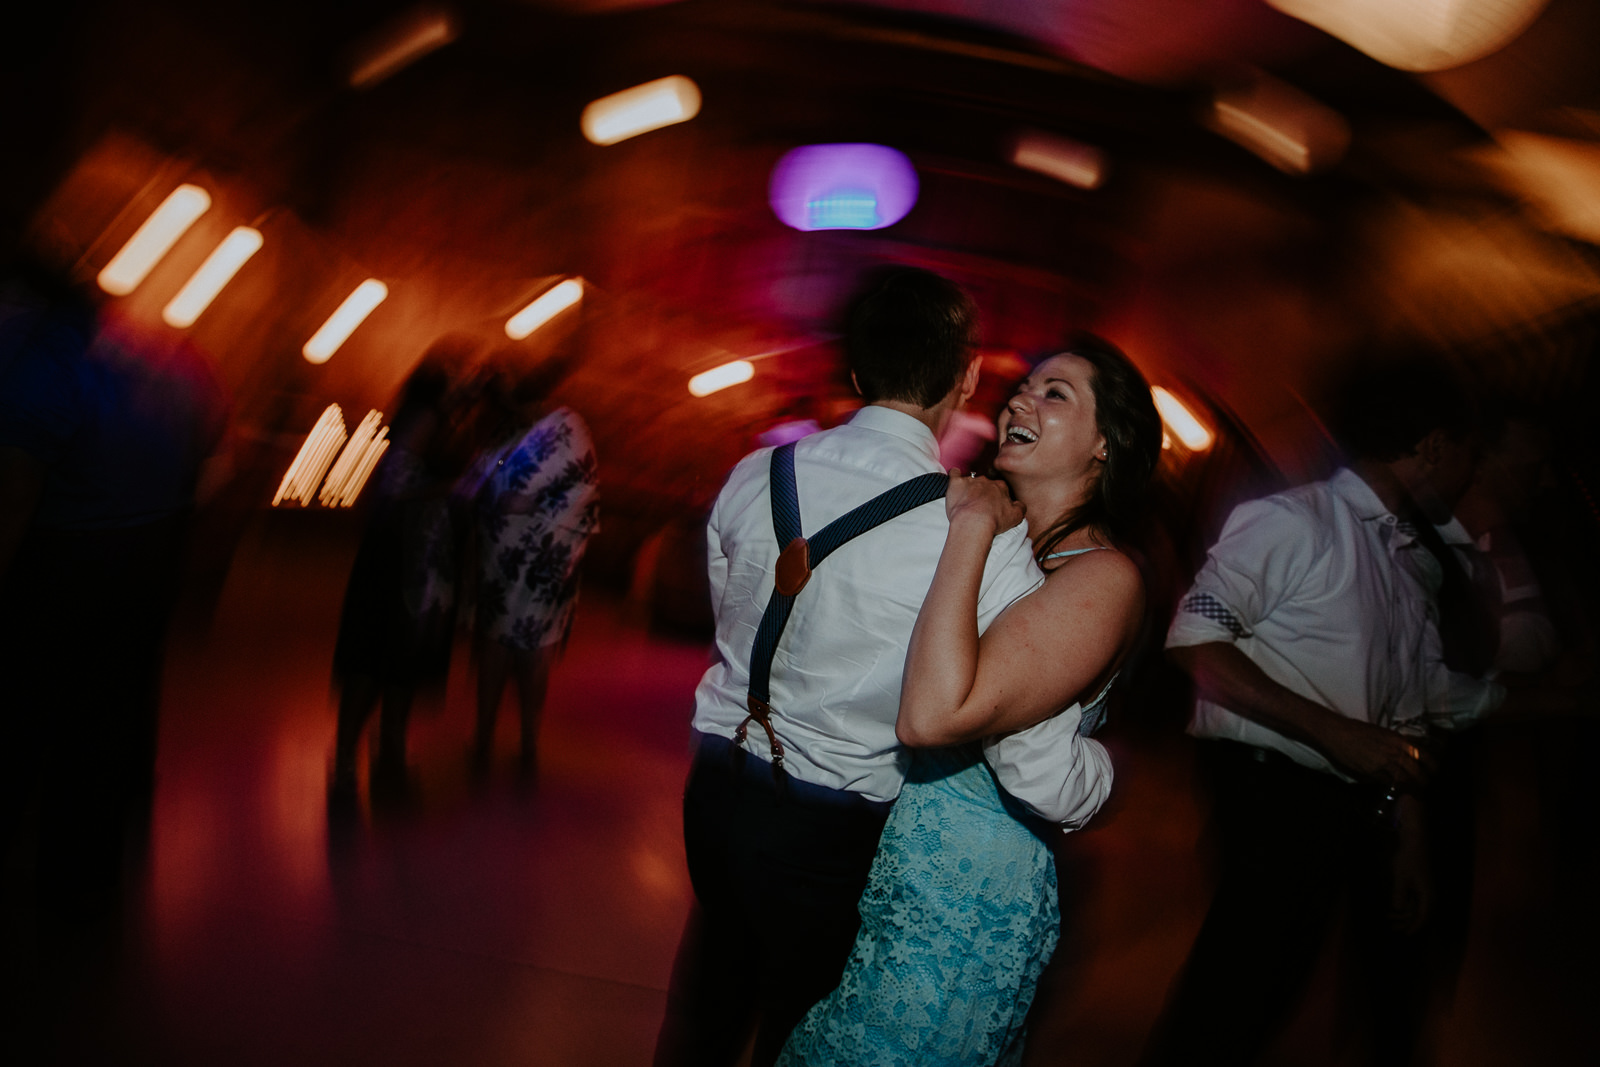 Two wedding guests dancing close with lights in background due to shutter drag